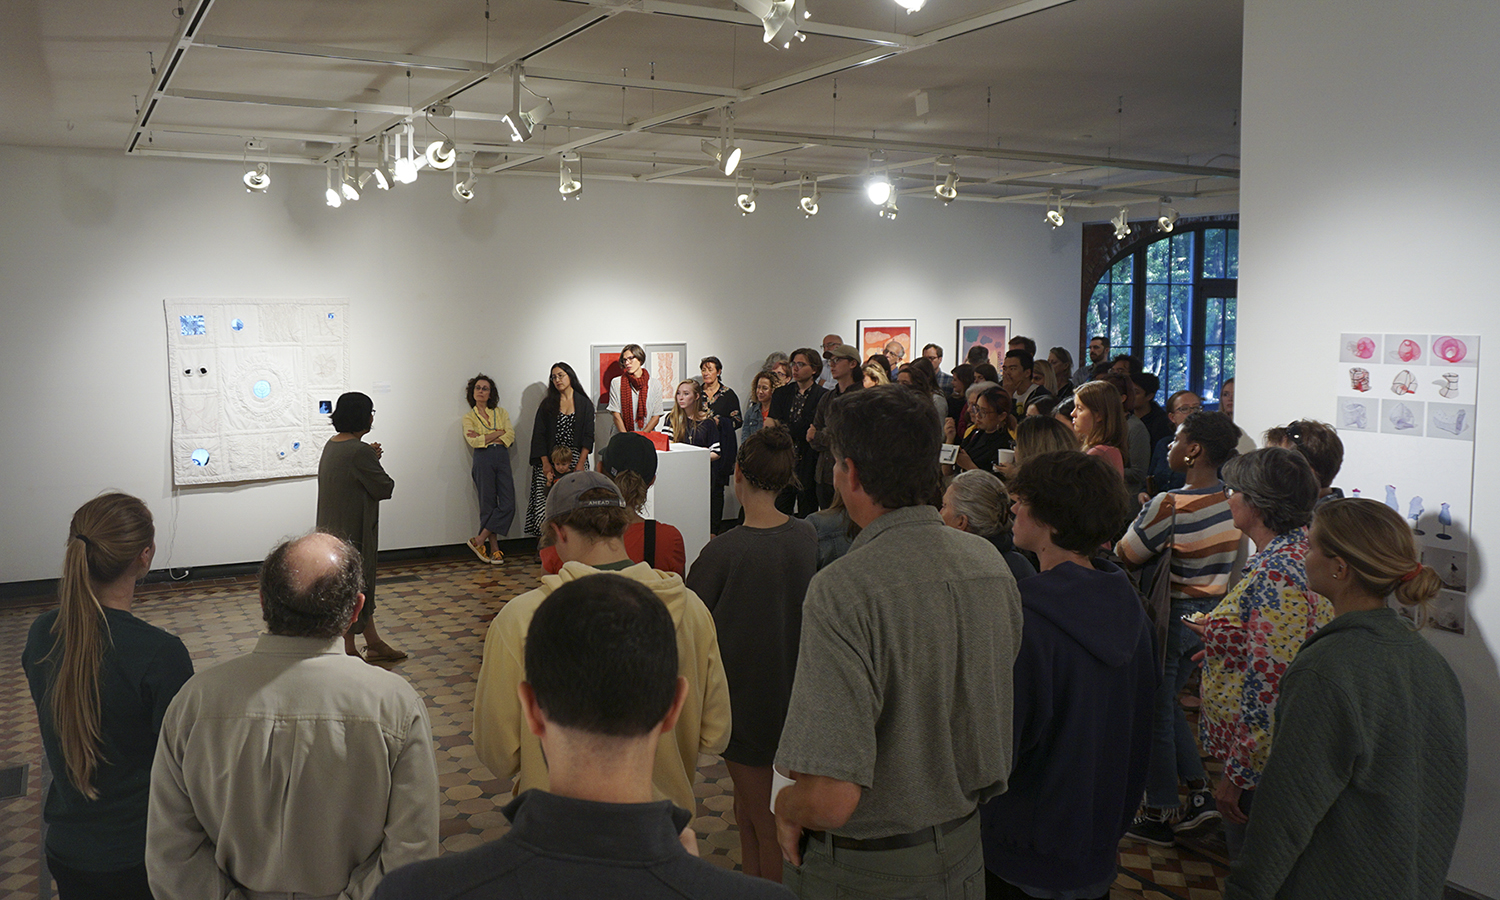 Professor of Art and Architecture Phillia Yi welcomes students and thier families to the Faculty Art Show in the Davis Gallery at Houghton House on Friday of Homecoming and Family Weekend.